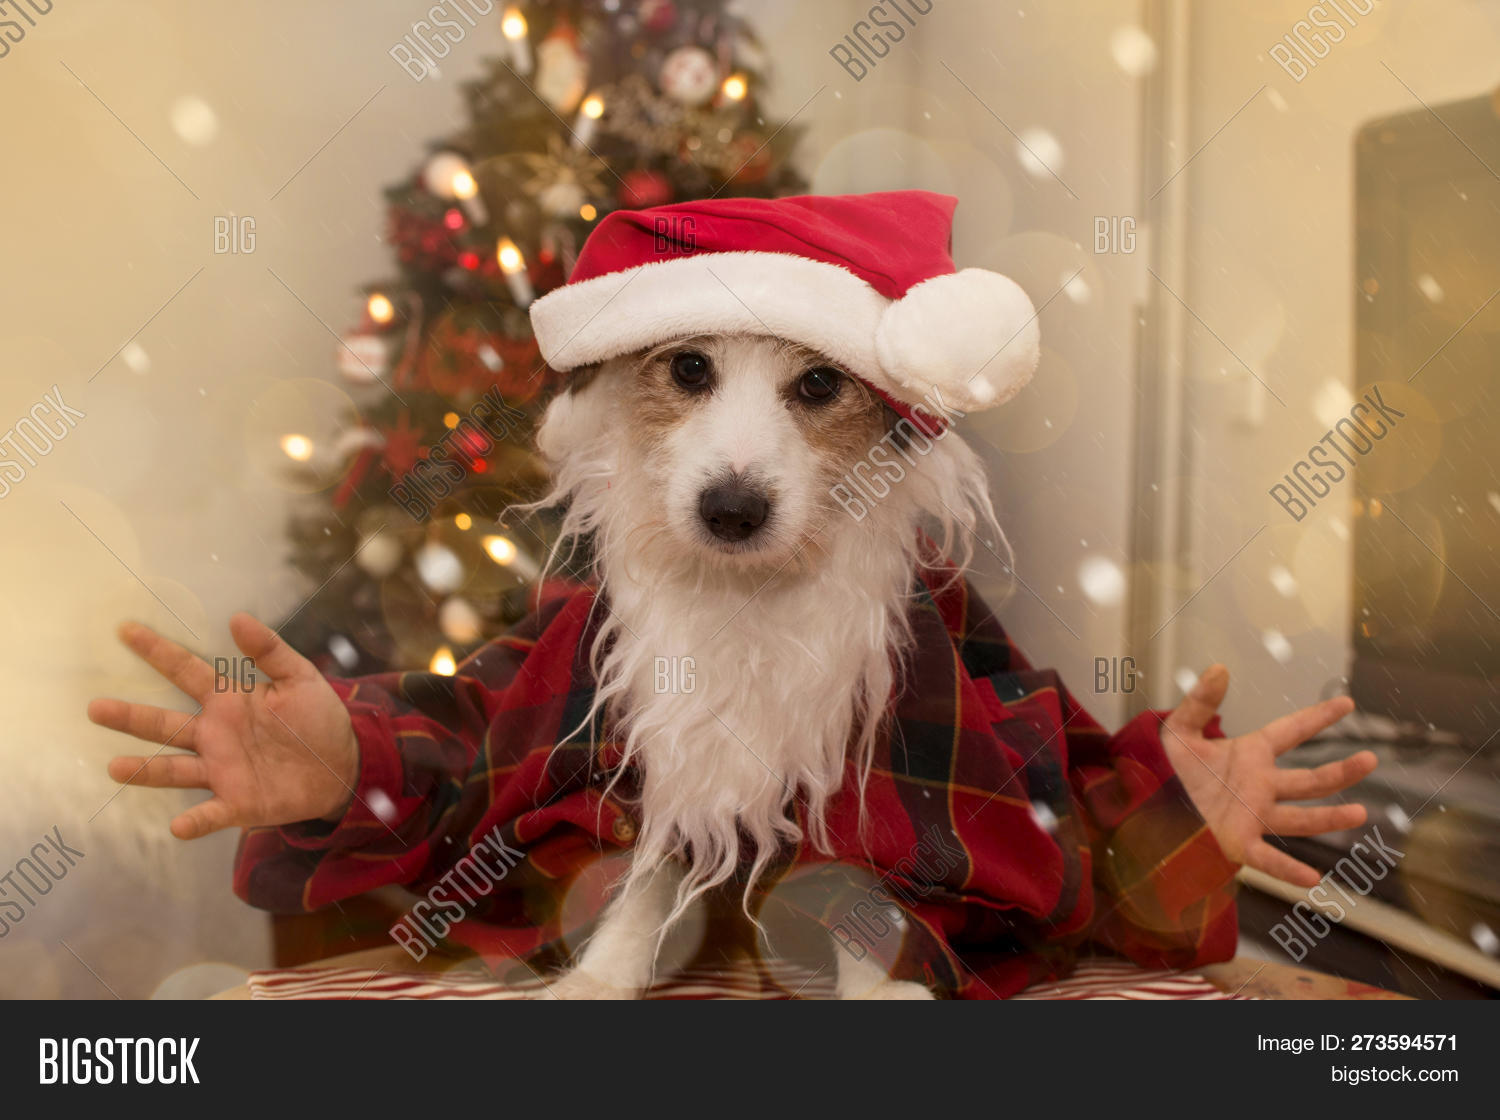 fefc107b56ea6 DOG CHRISTMAS. FUNNY JACK RUSSELL PUPPY WEARING A RED SANTA CLAUS COSTUME  WITH BEARD AND HAT AGAINST CHRISTMAS TREE LIGHTS.